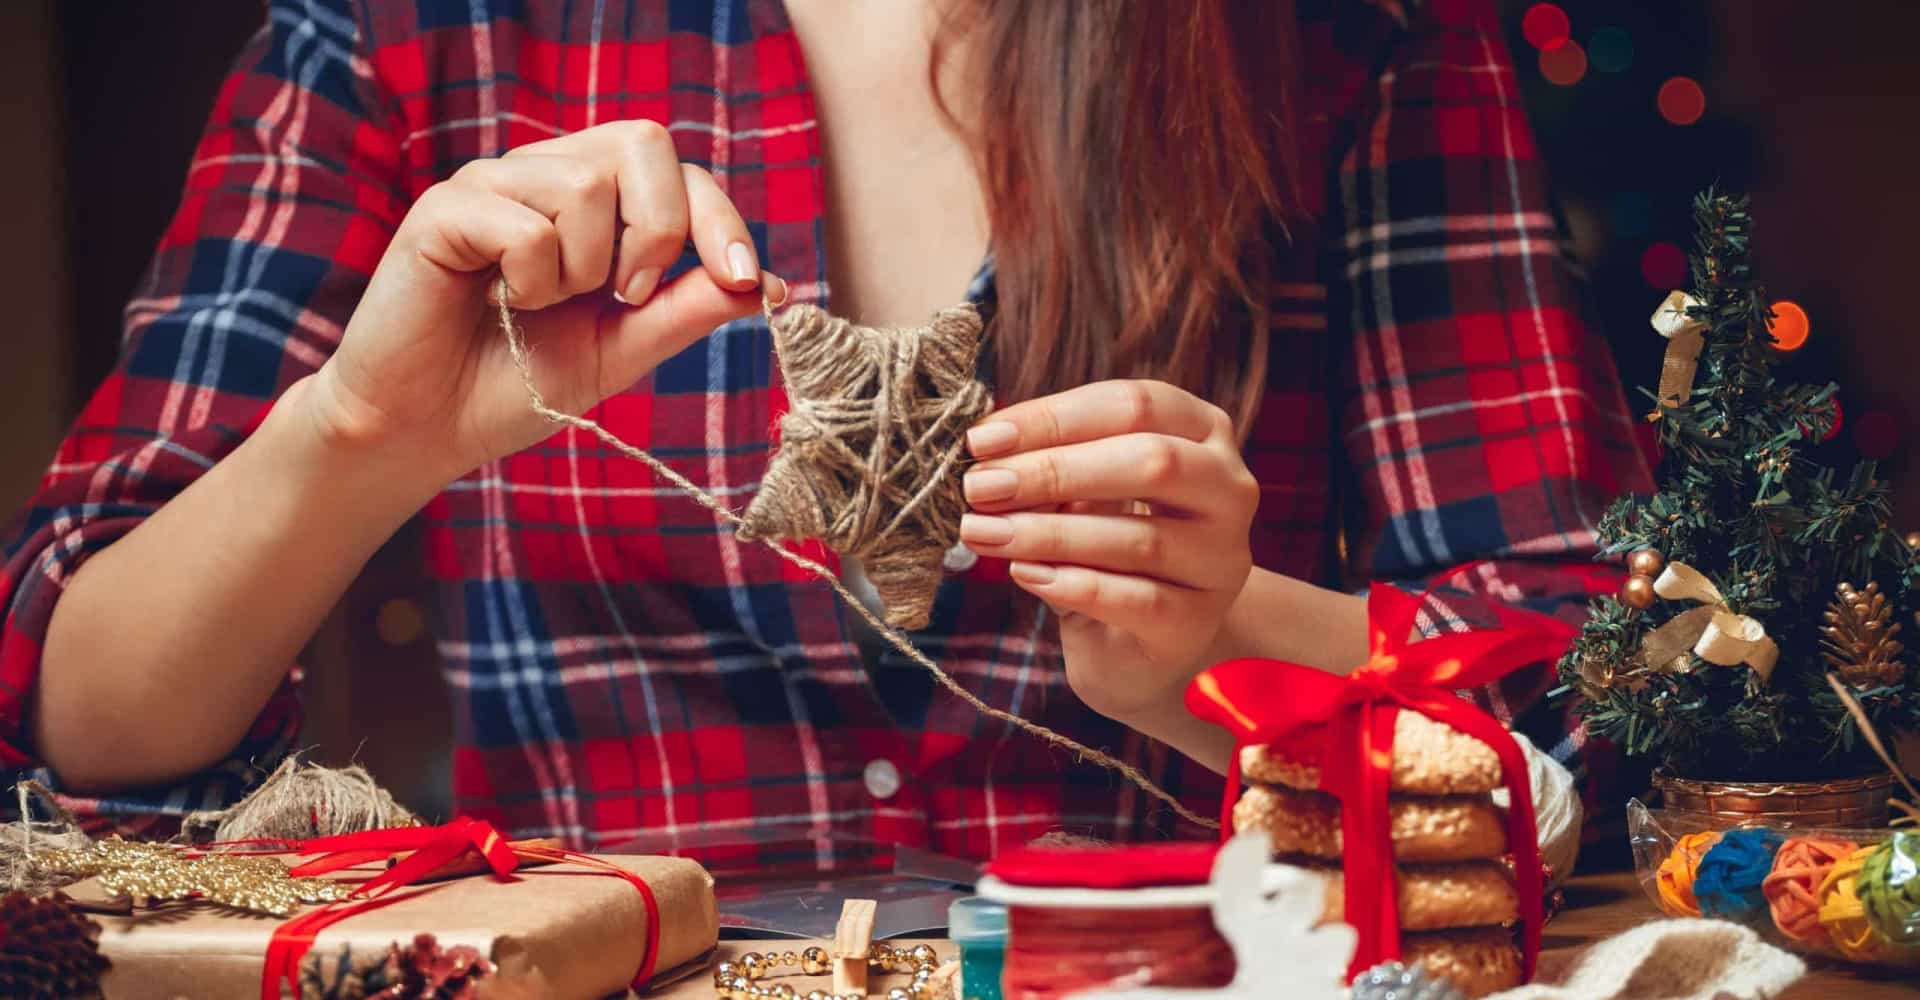 DIY Christmas decorations made with everyday objects